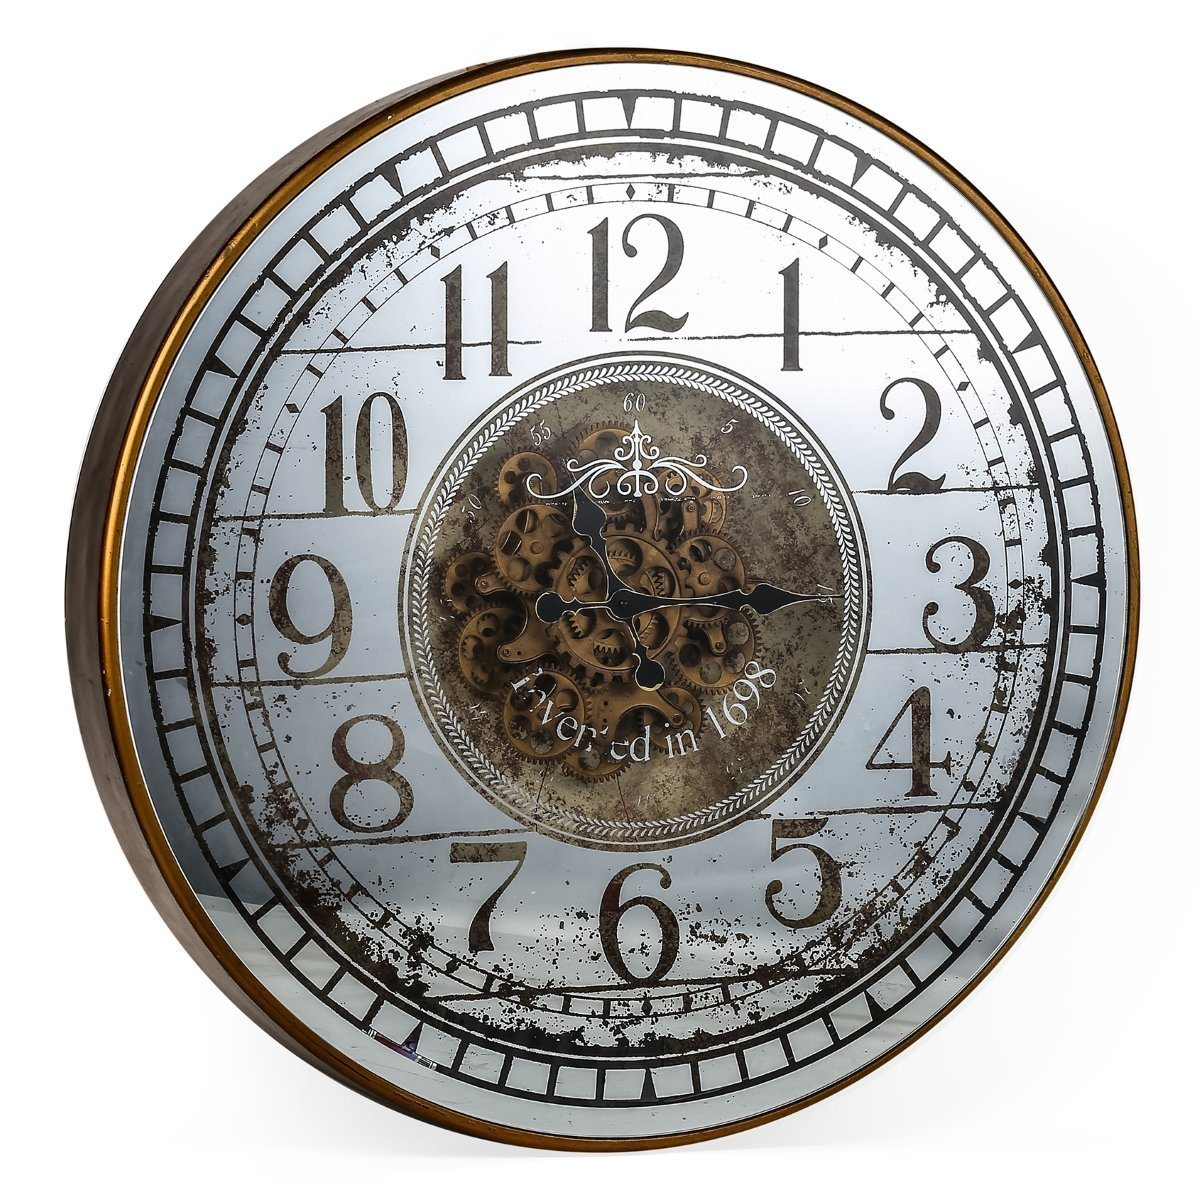 New large round mirror moving cogs wall clock 82cm ebay new large round mirror moving cogs wall clock 82cm amipublicfo Image collections